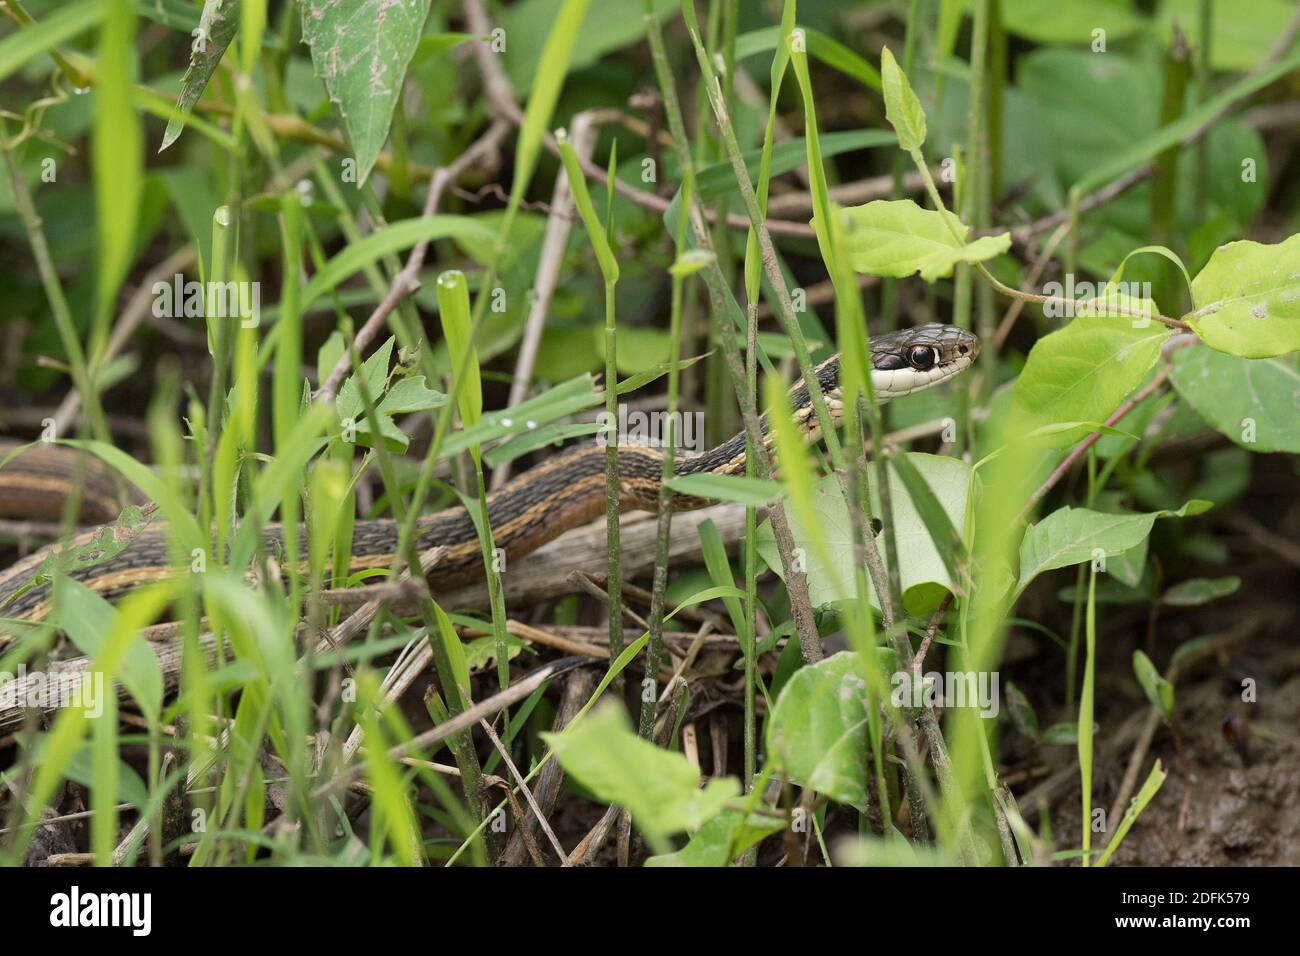 A Eastern ribbon snake or common ribbonsnake slithers through the grass in a wetland environment. Stock Photo